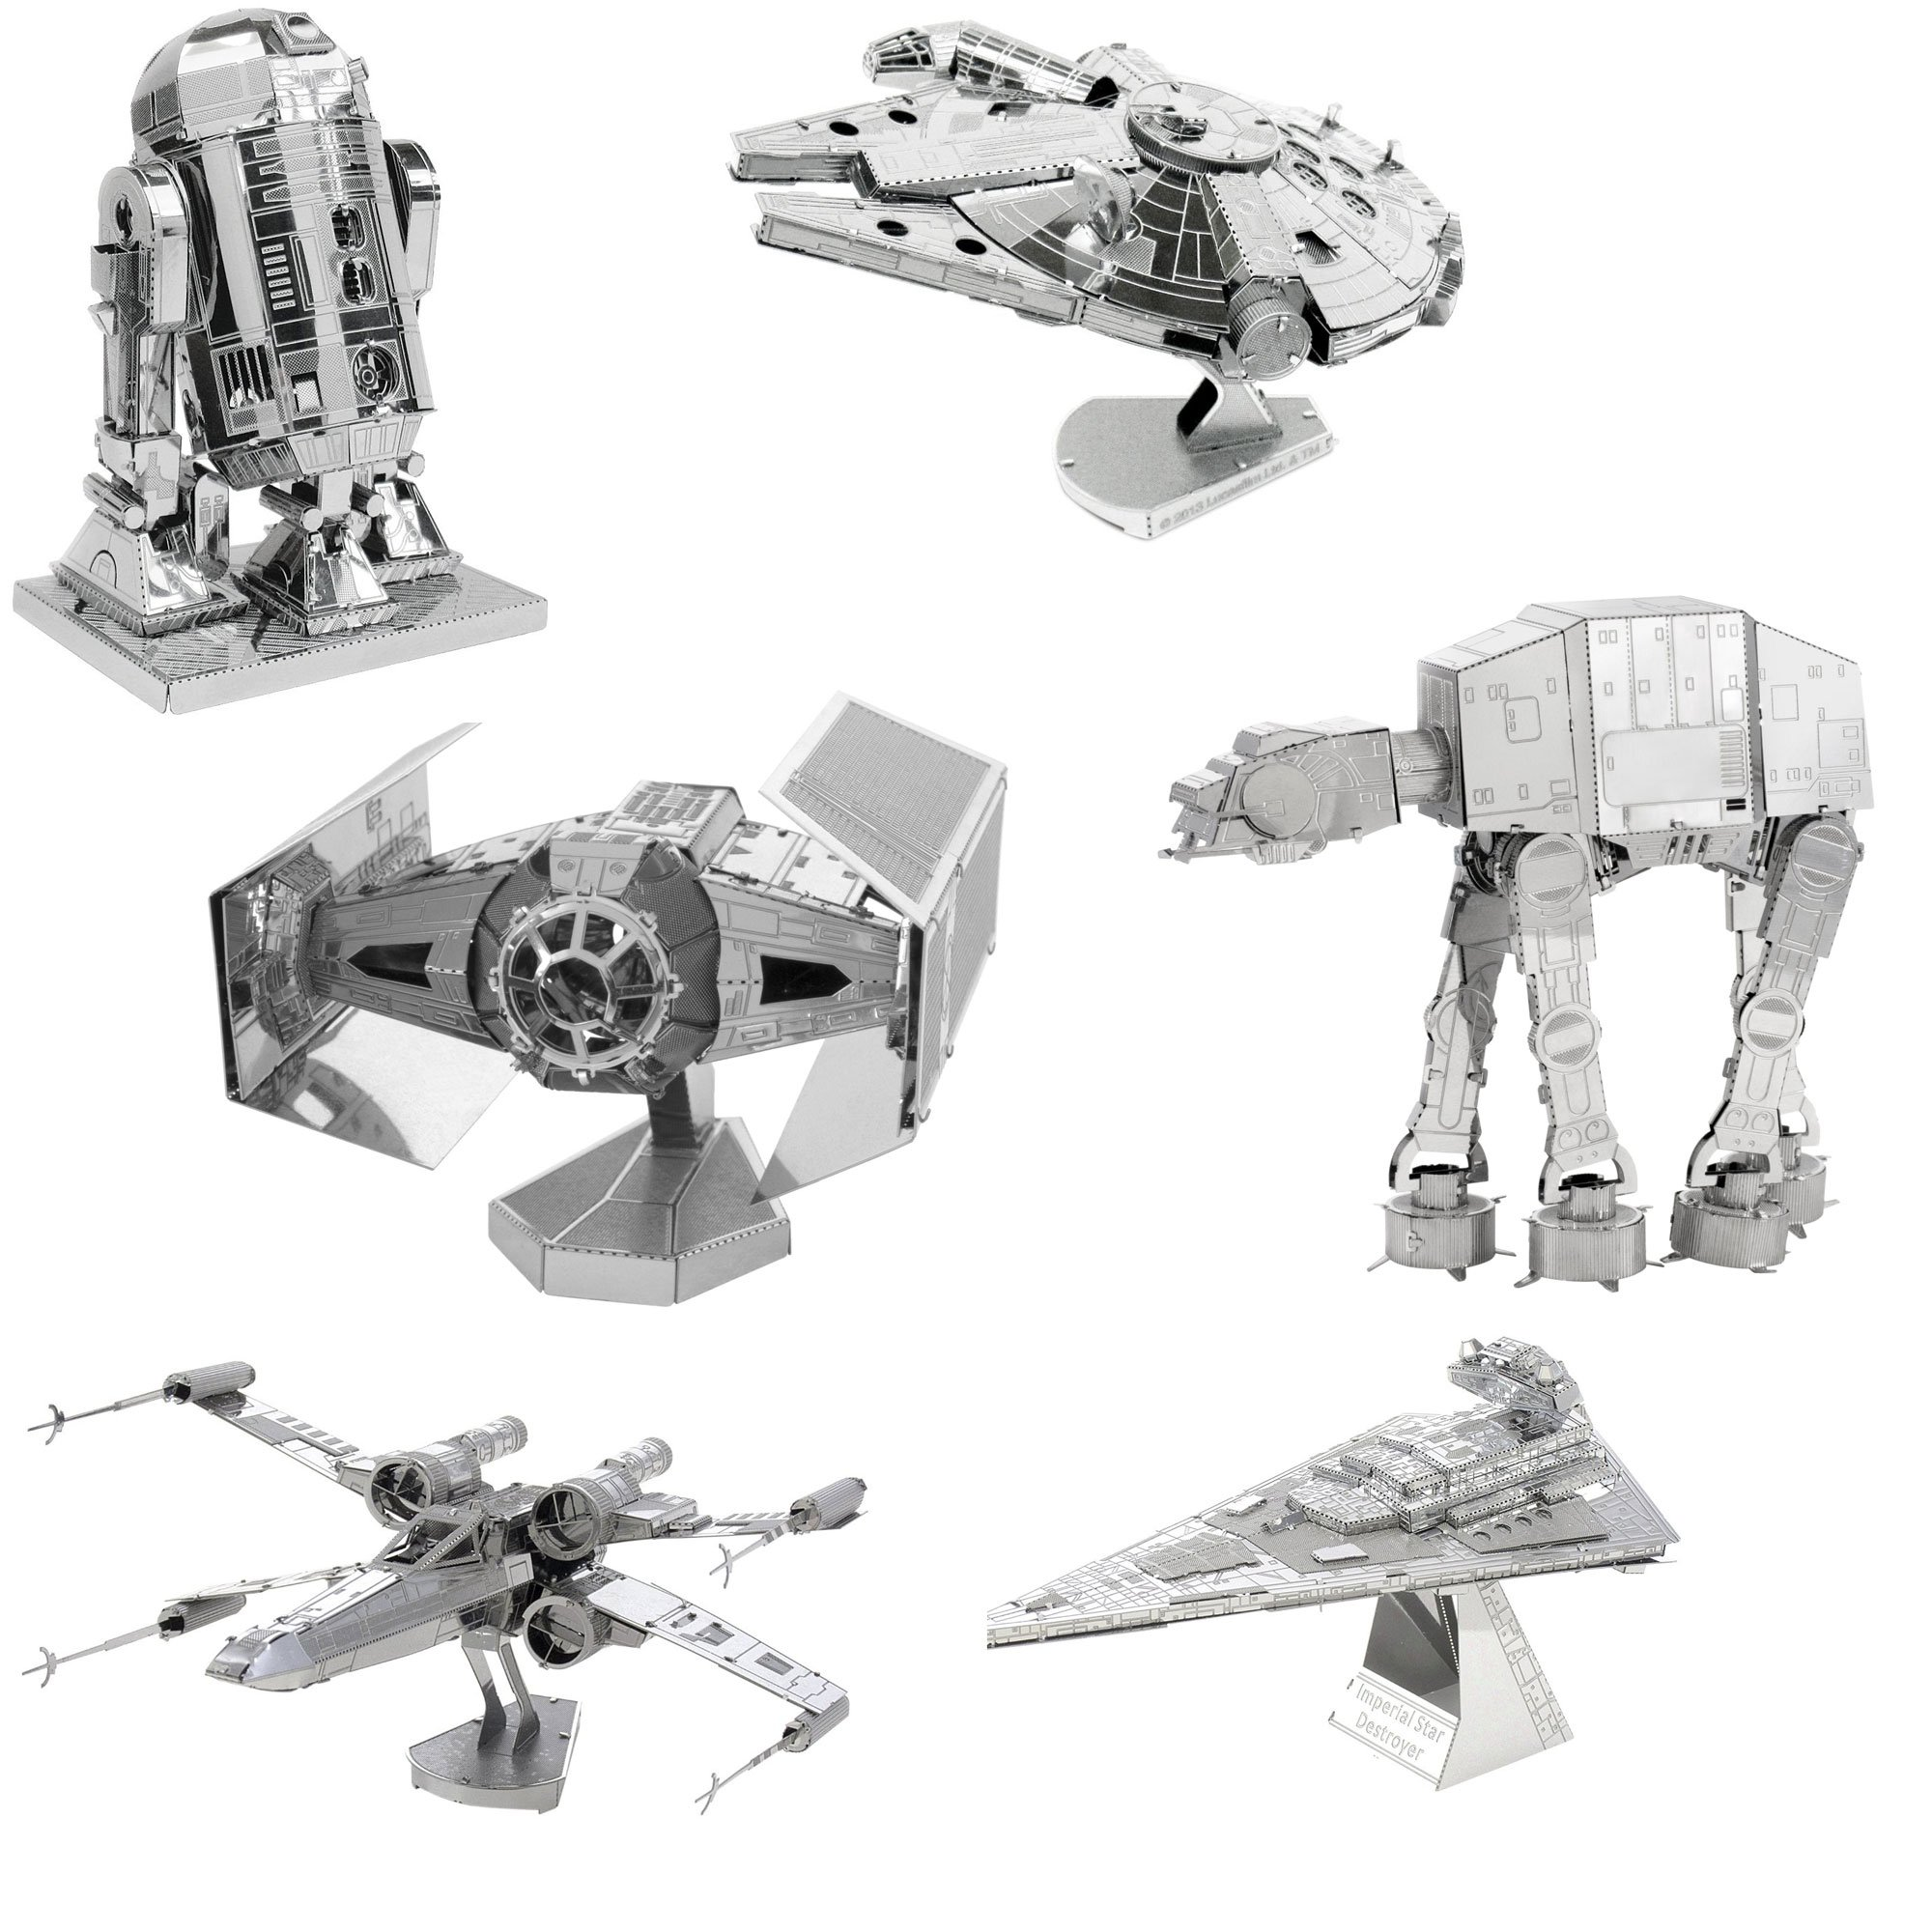 Metal Earth 3D Model Kits Star Wars Set of 6 Millennium Falcon - R2-D2 - X-Wing Starfighter - at-at - Darth Vader's TIE Fighter - Imperial Star Destroyer